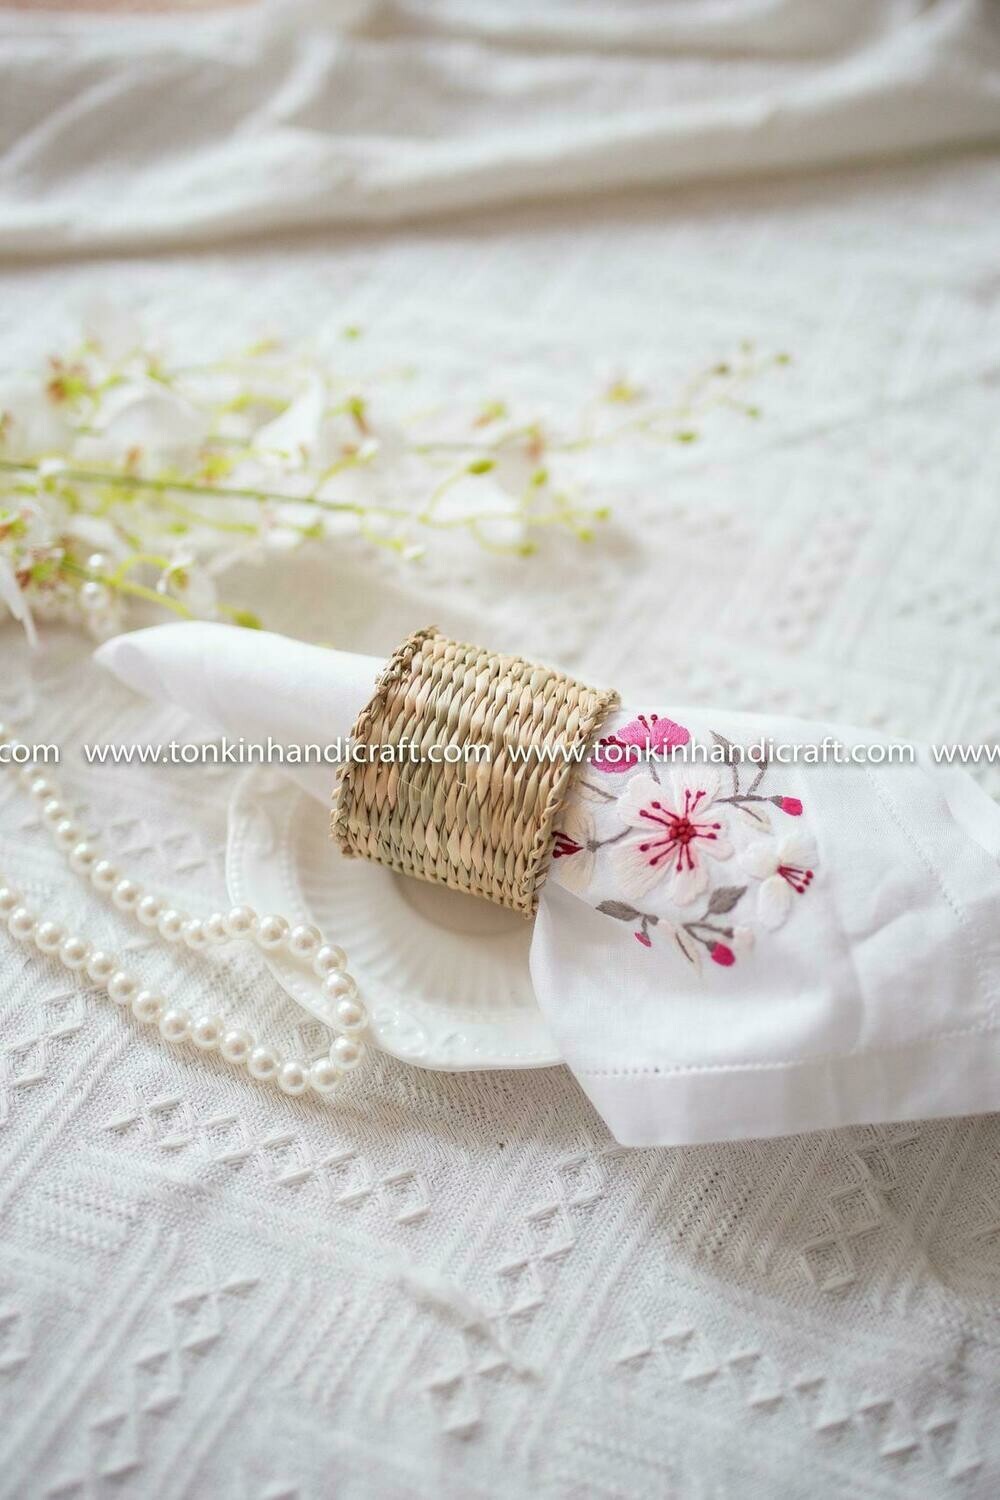 Set of 4 Pcs Braided Handwoven Natural Seagrass Round Napkin Ring